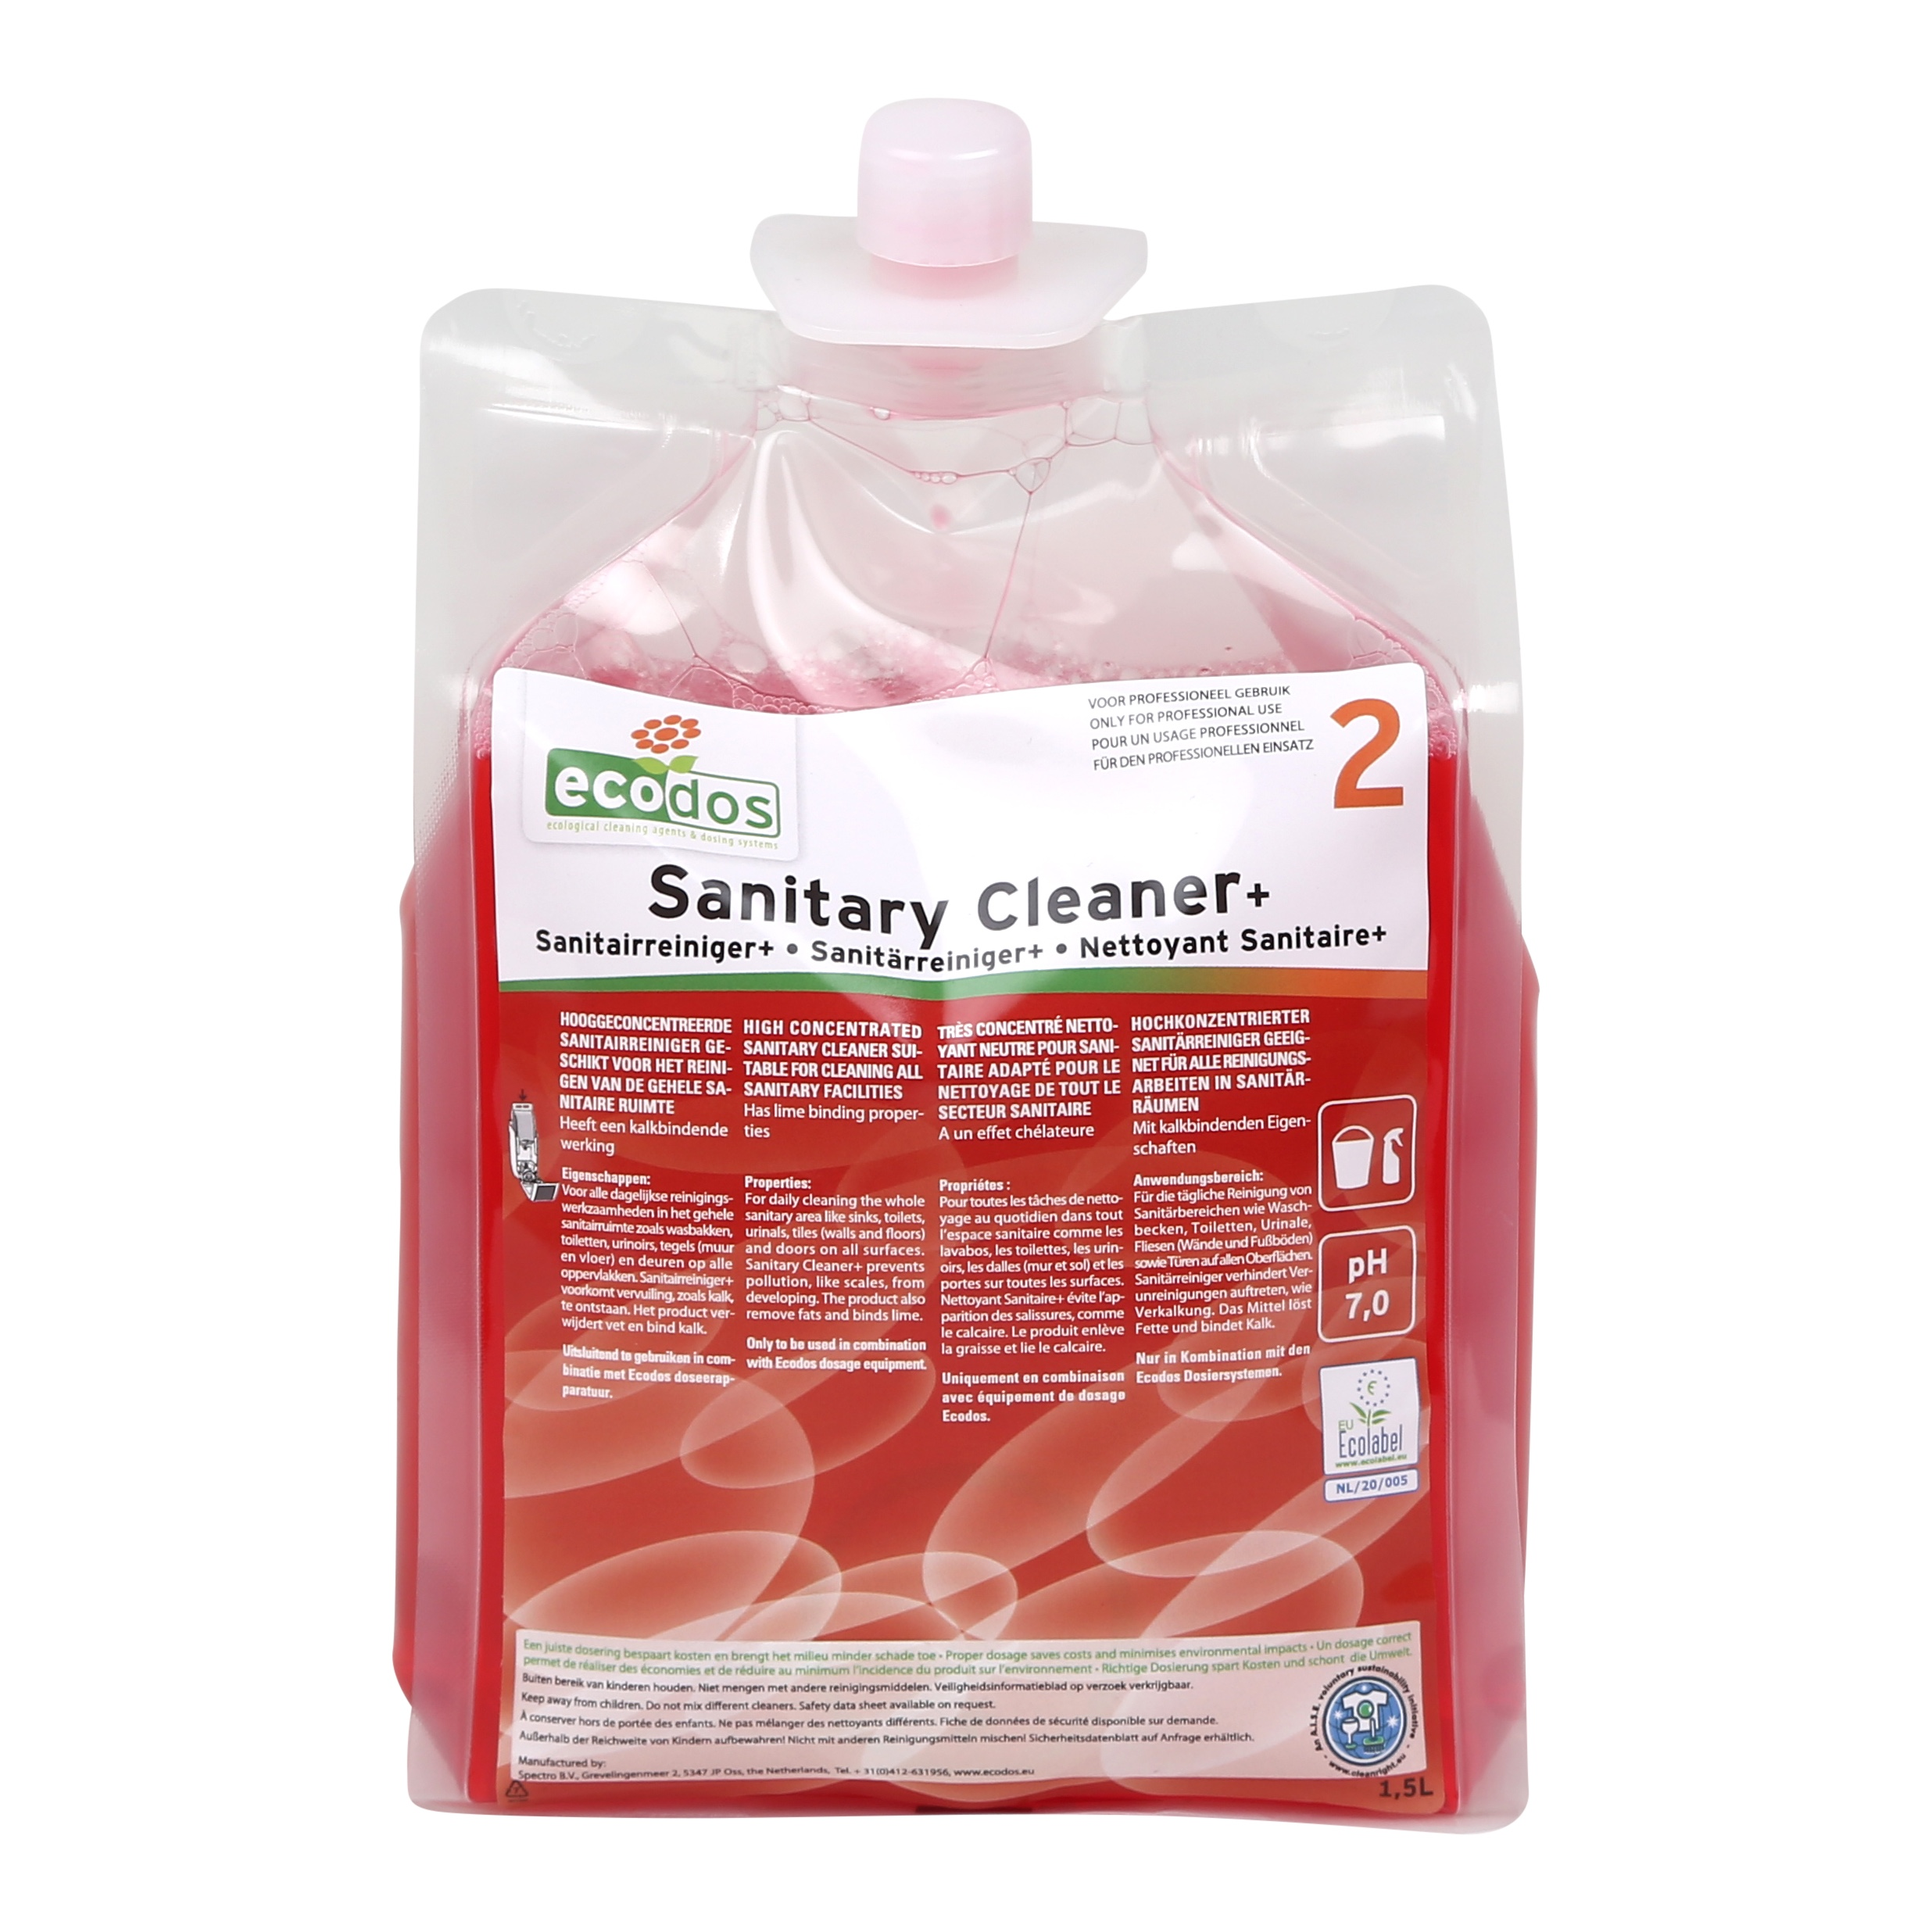 SANITAR CLEANER PLUS ECODOS easy system